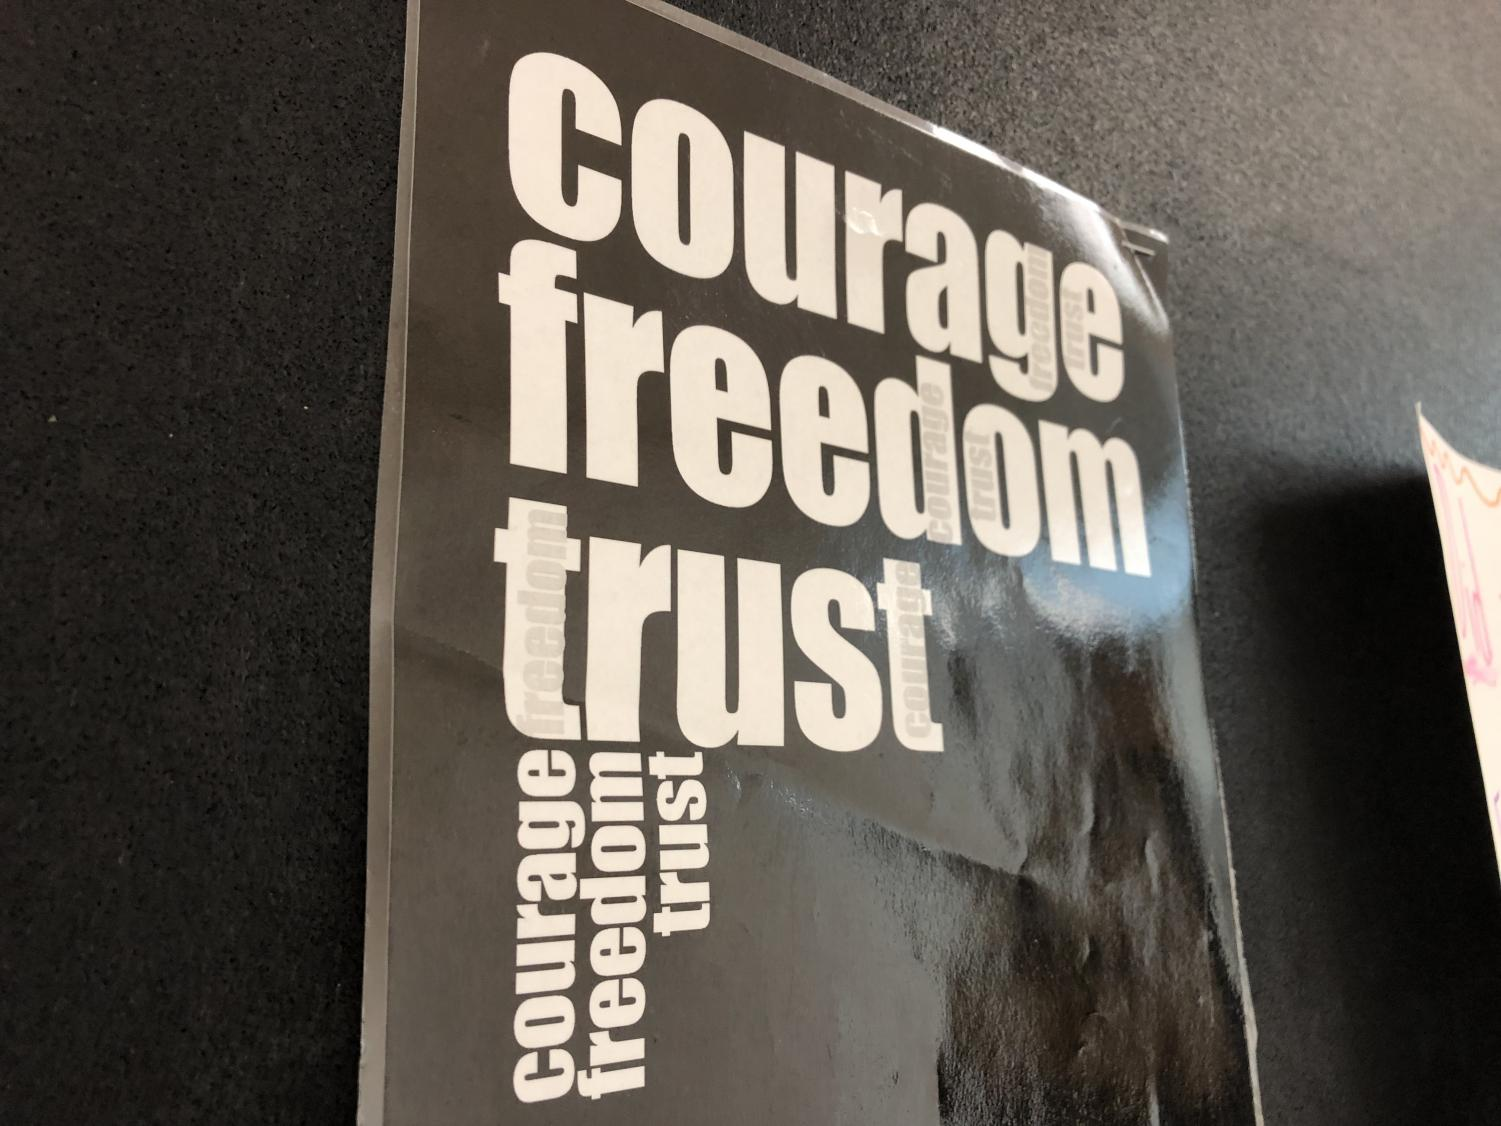 A poster hangs in the hallway of the D Wing encouraging freedom and trust.